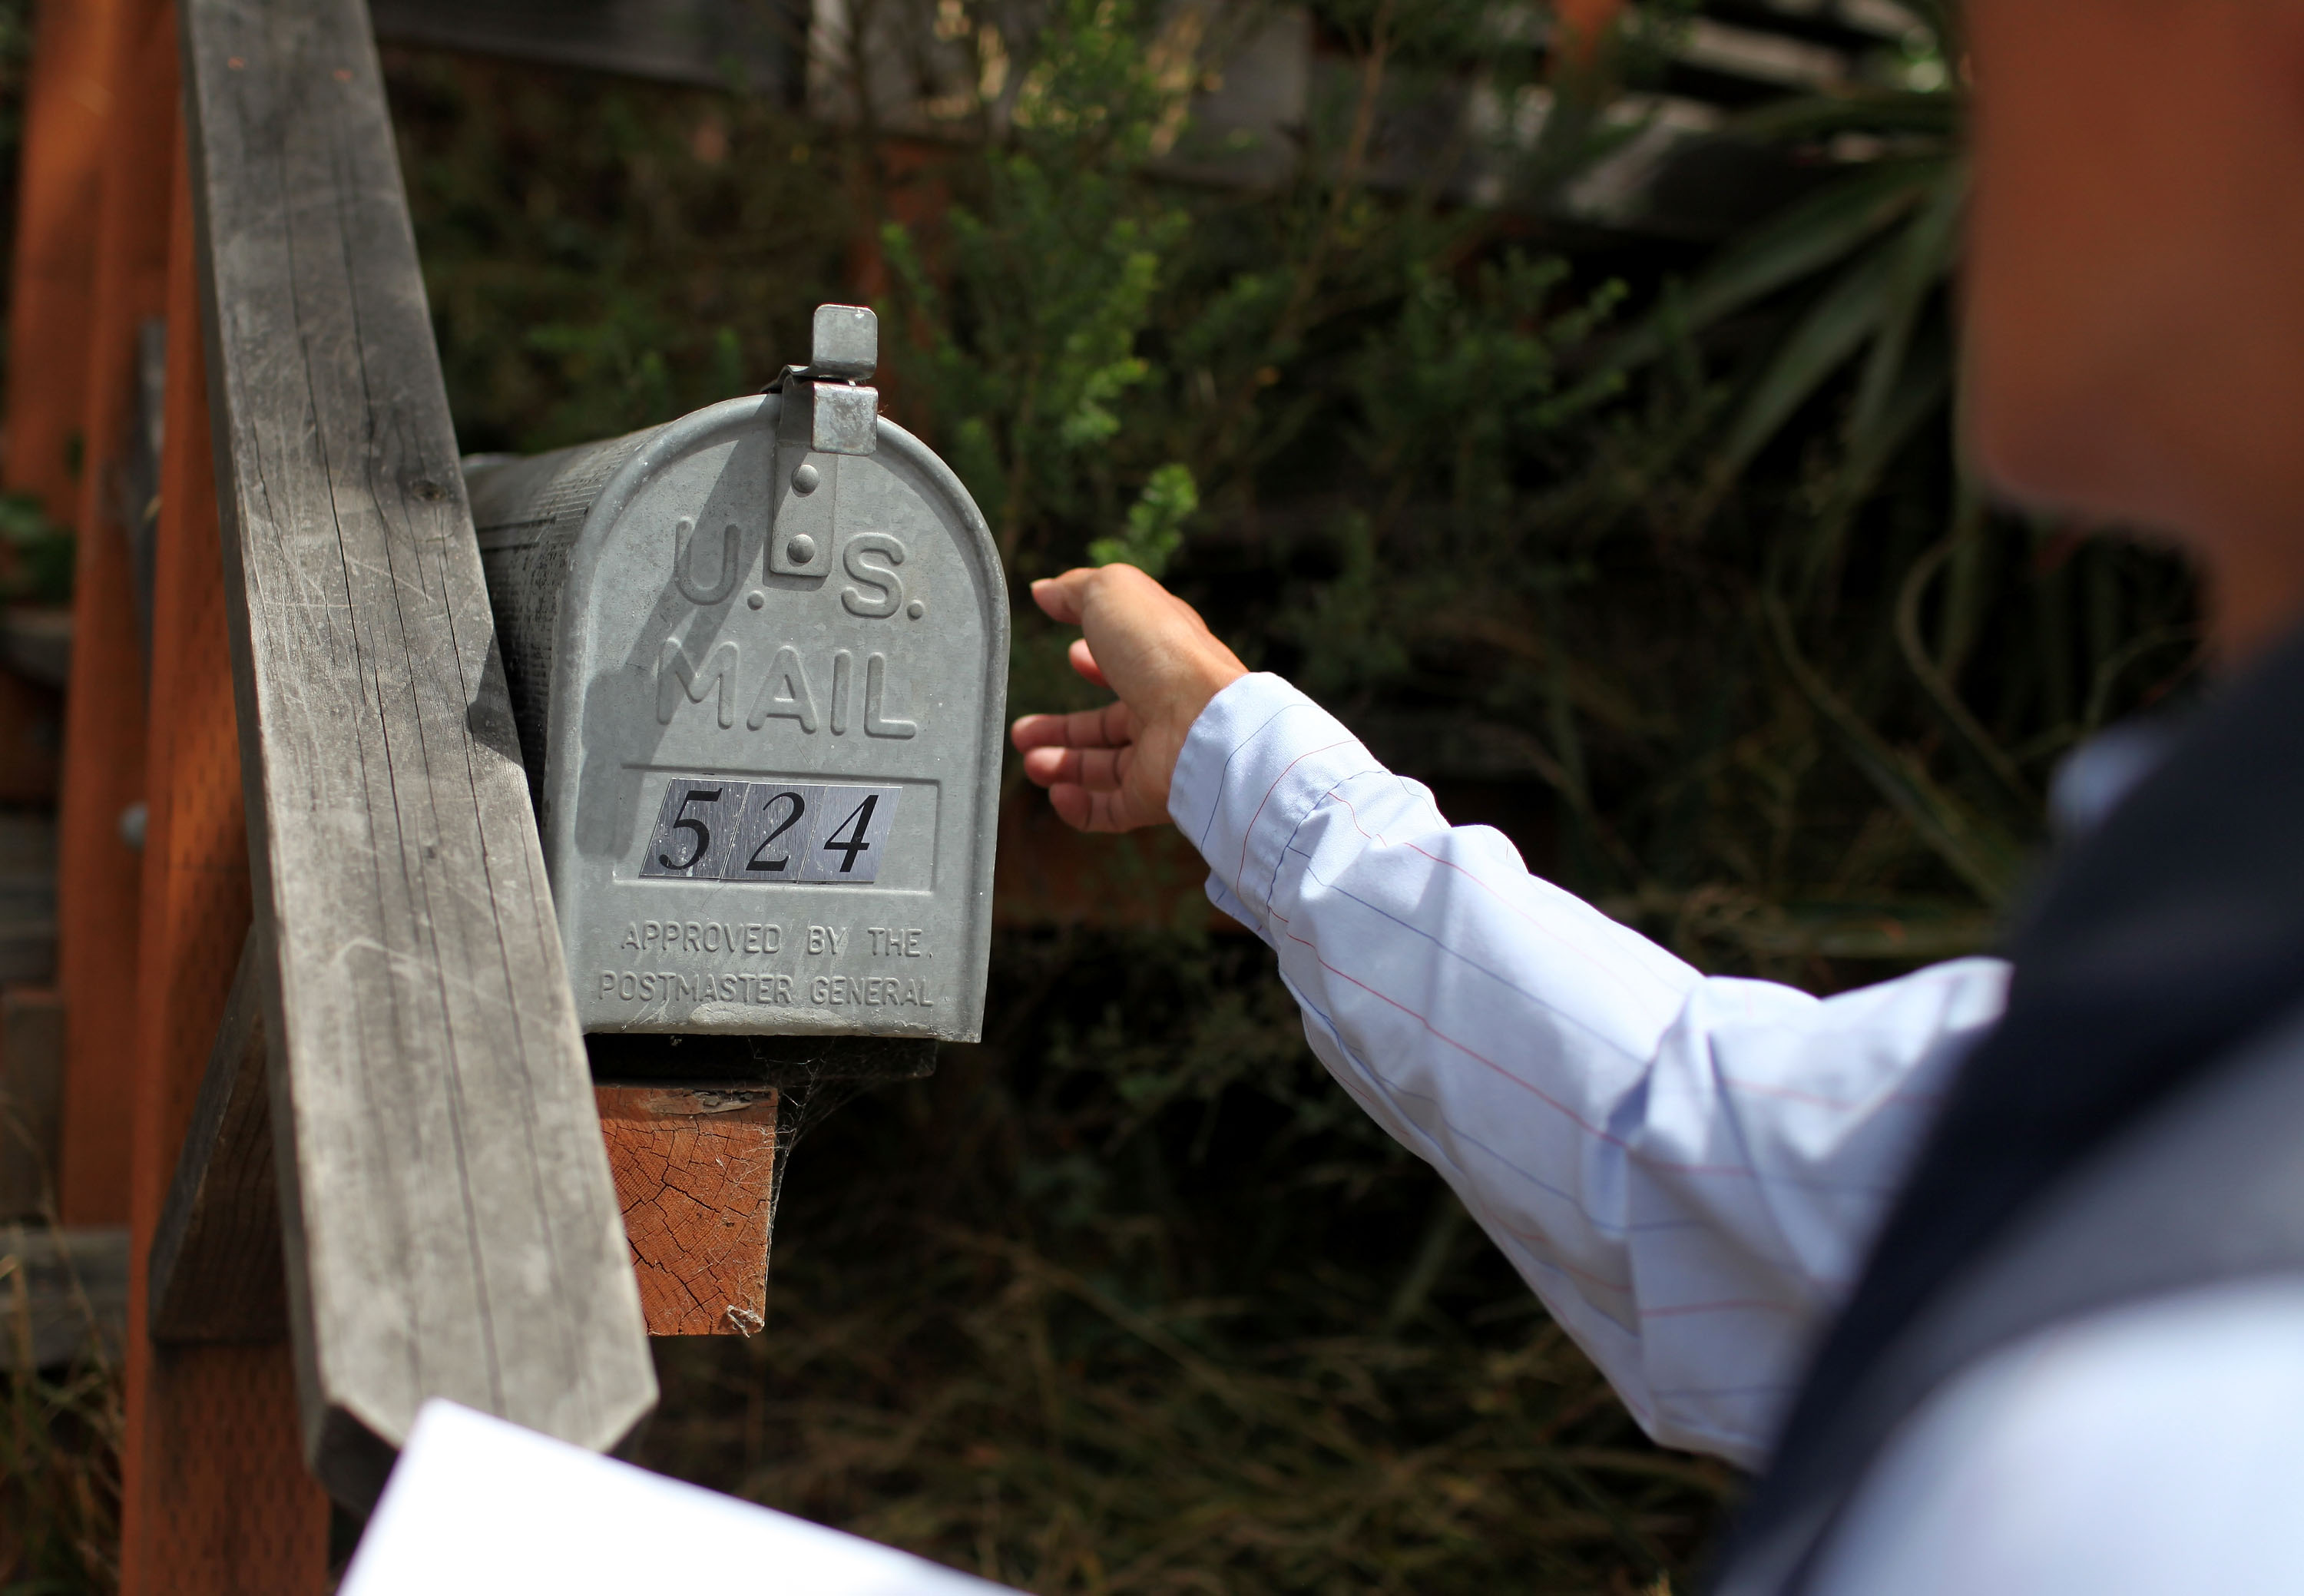 US Postal Service letter carrier Anthony Ow prepares to place letters in a mailbox. (Photo by Justin Sullivan/Getty Images)